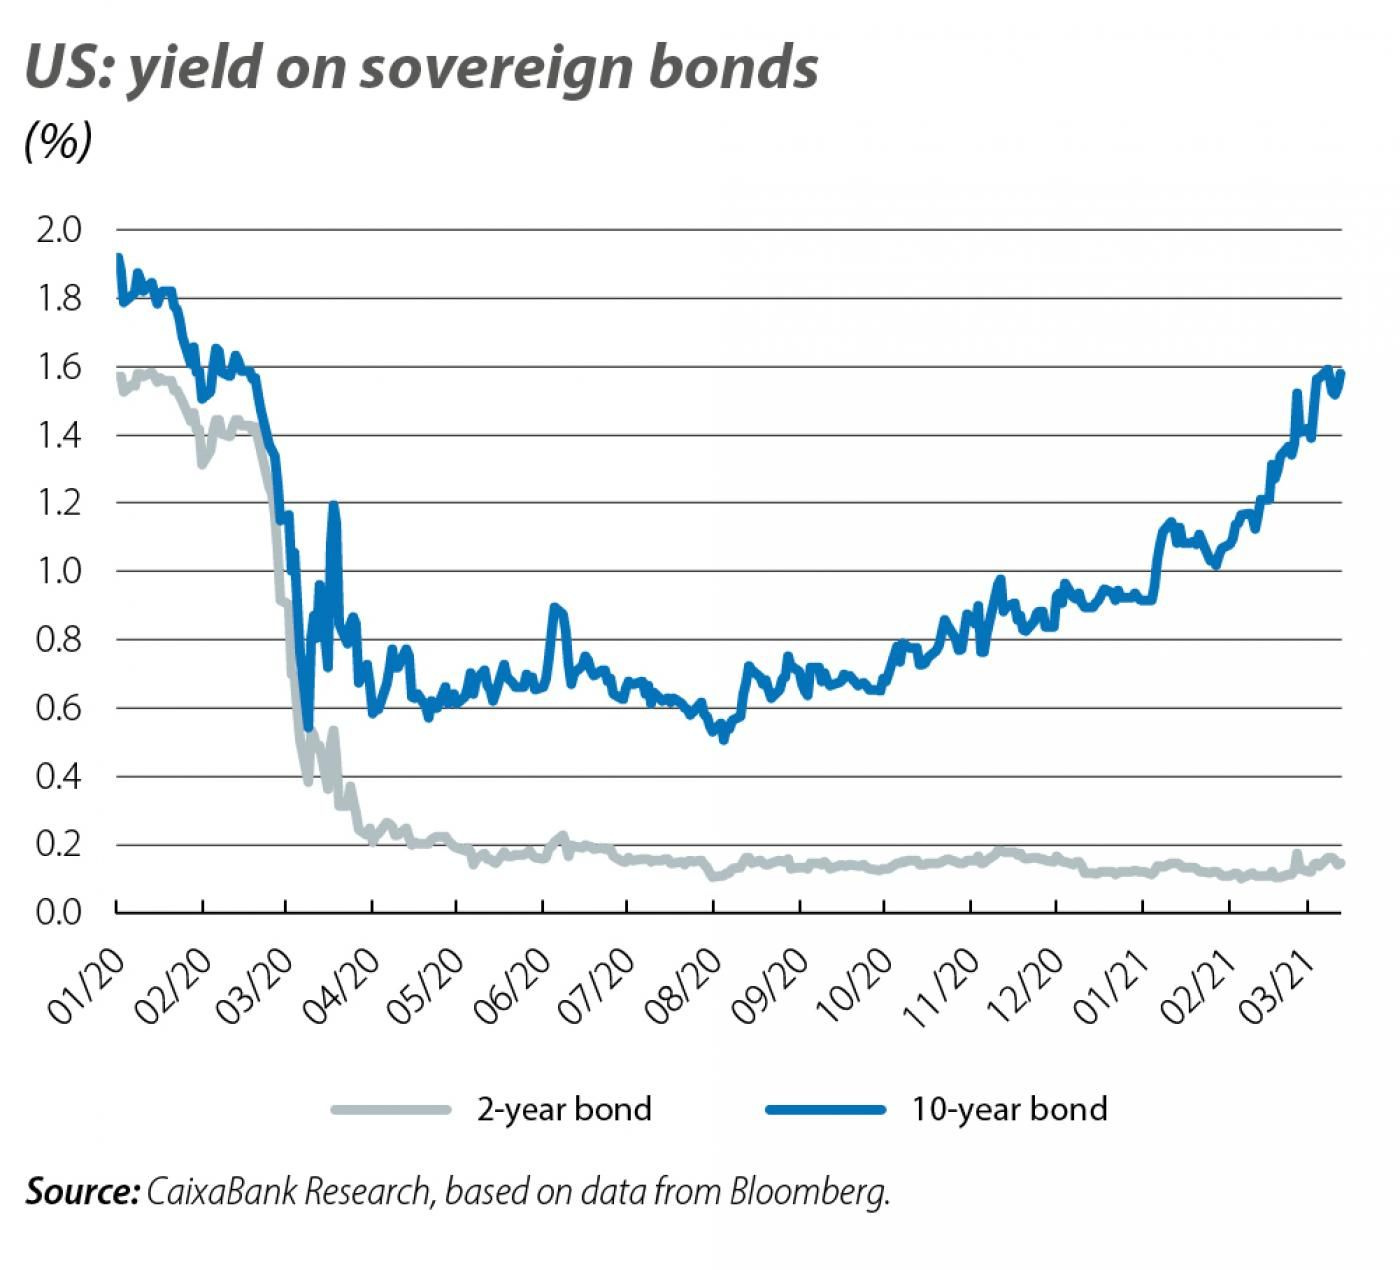 US: yields on sovereign bonds